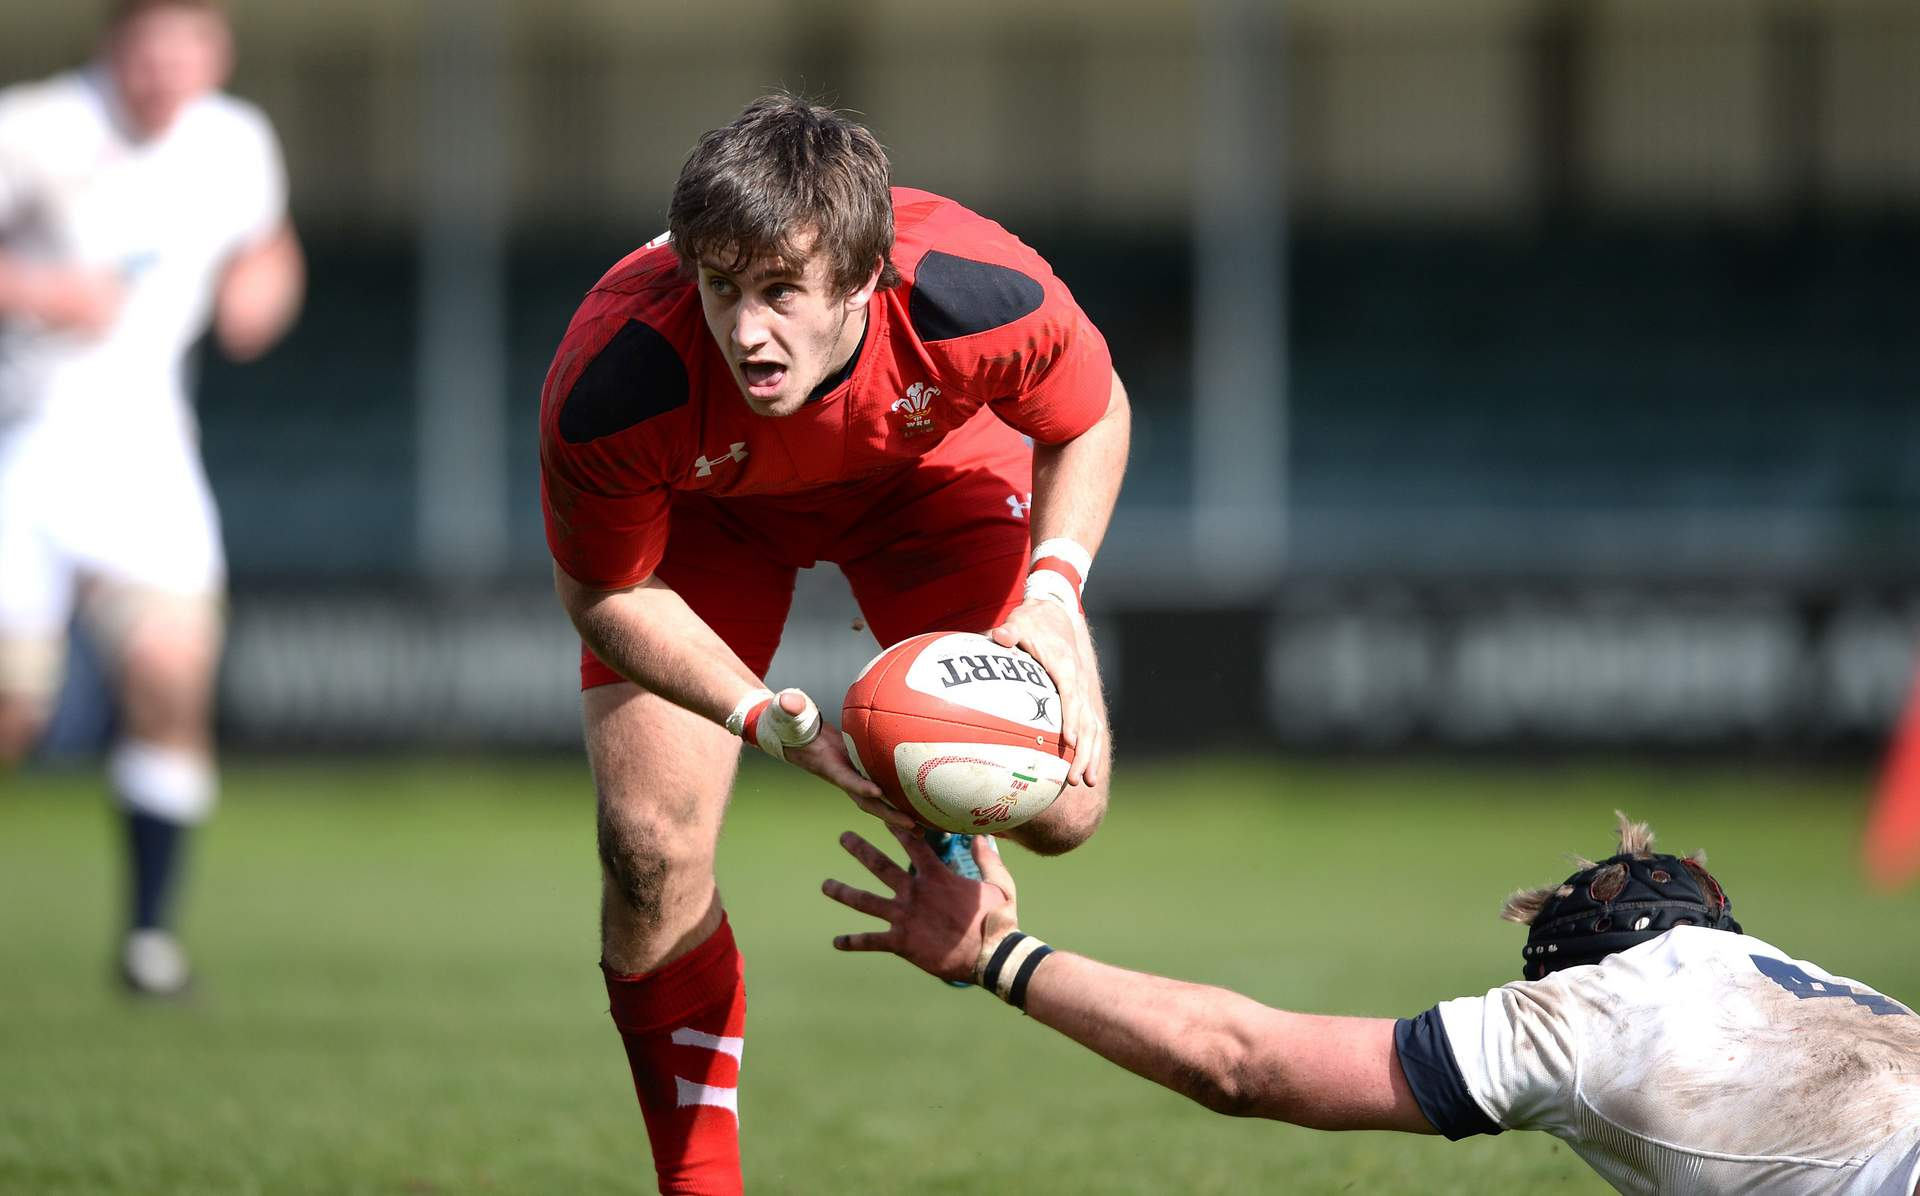 Harsh lesson for Wales Under 18